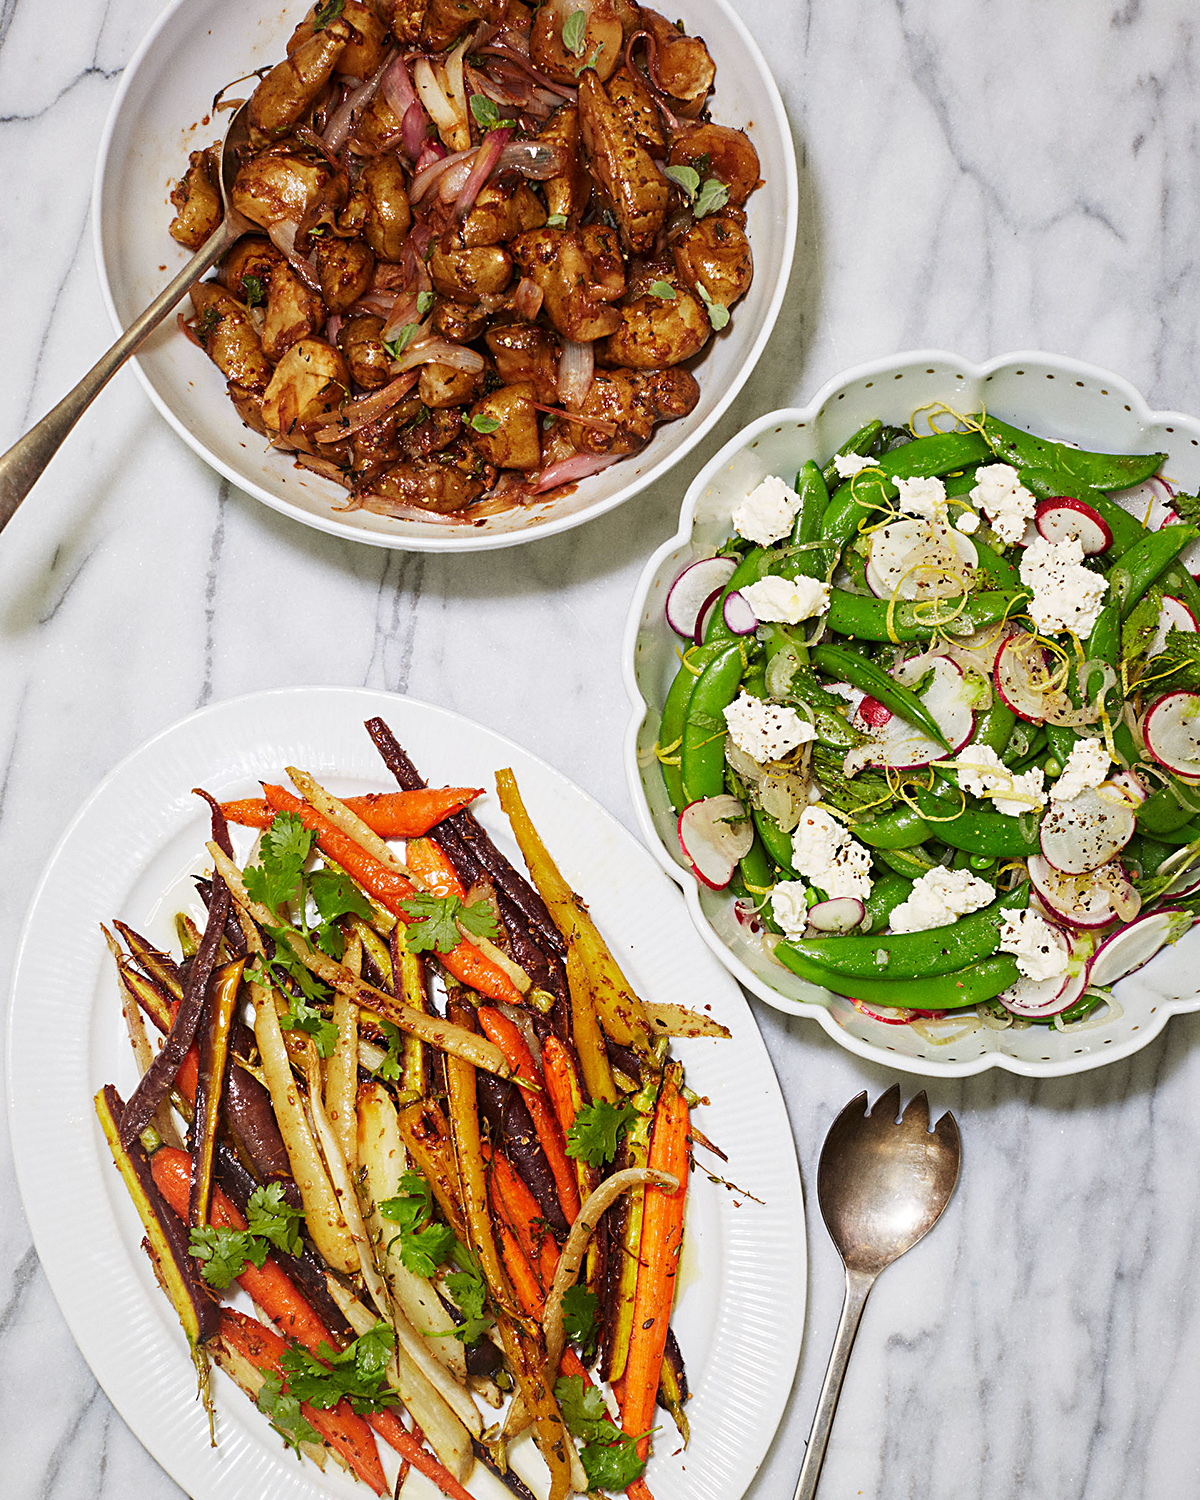 Geoffrey Zakarian's Easter vegetable side dishes